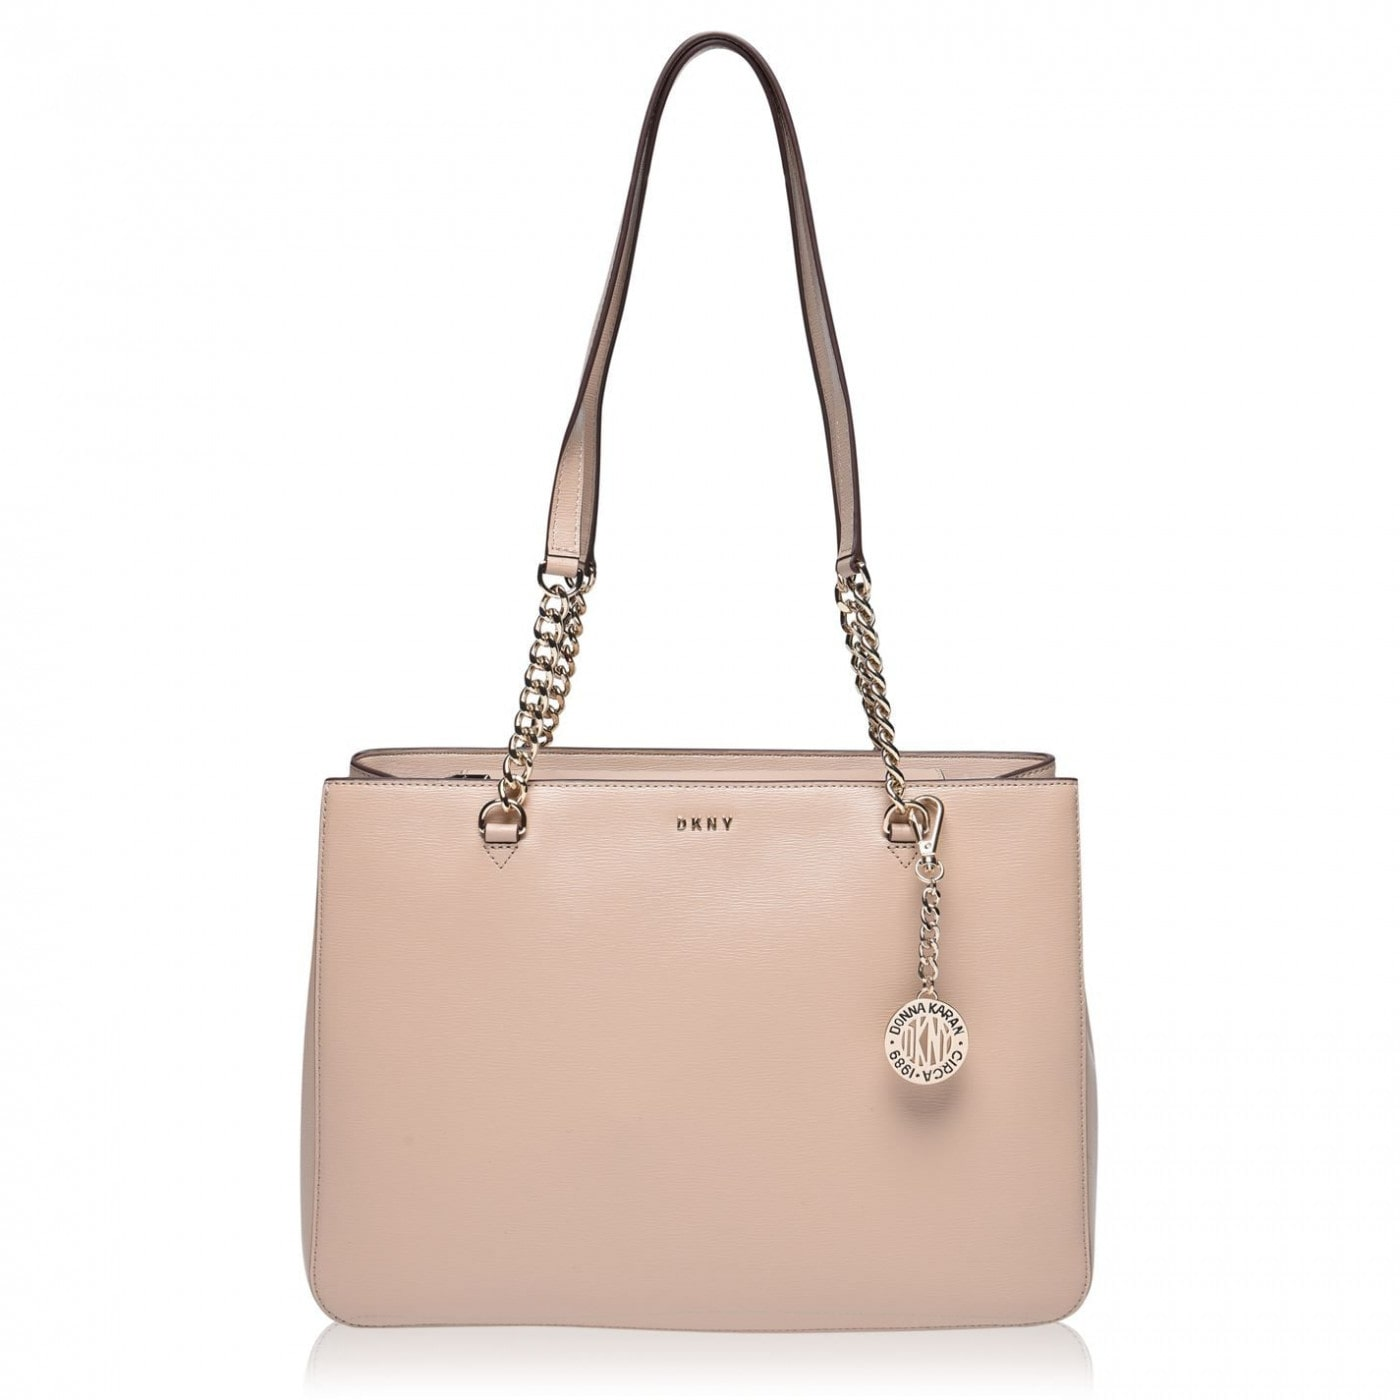 DKNY Sutton Chain Shopper